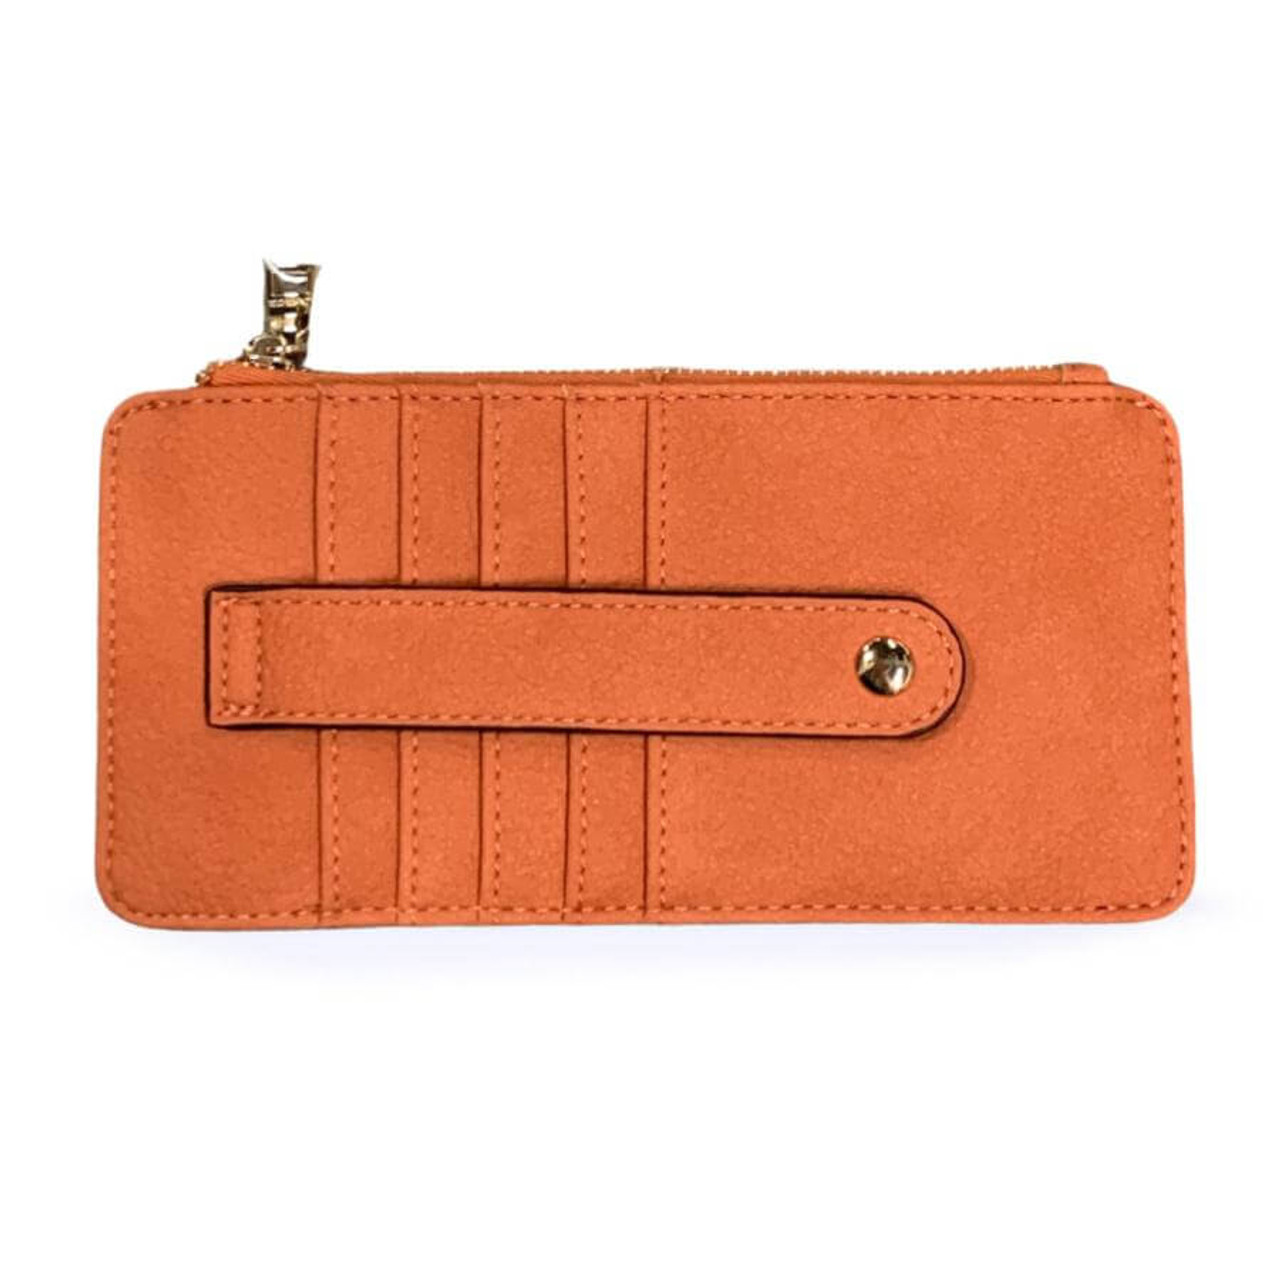 Saige features multiple card holders, and ID holder, and a zipper change pouch. The snap keeps your card secure